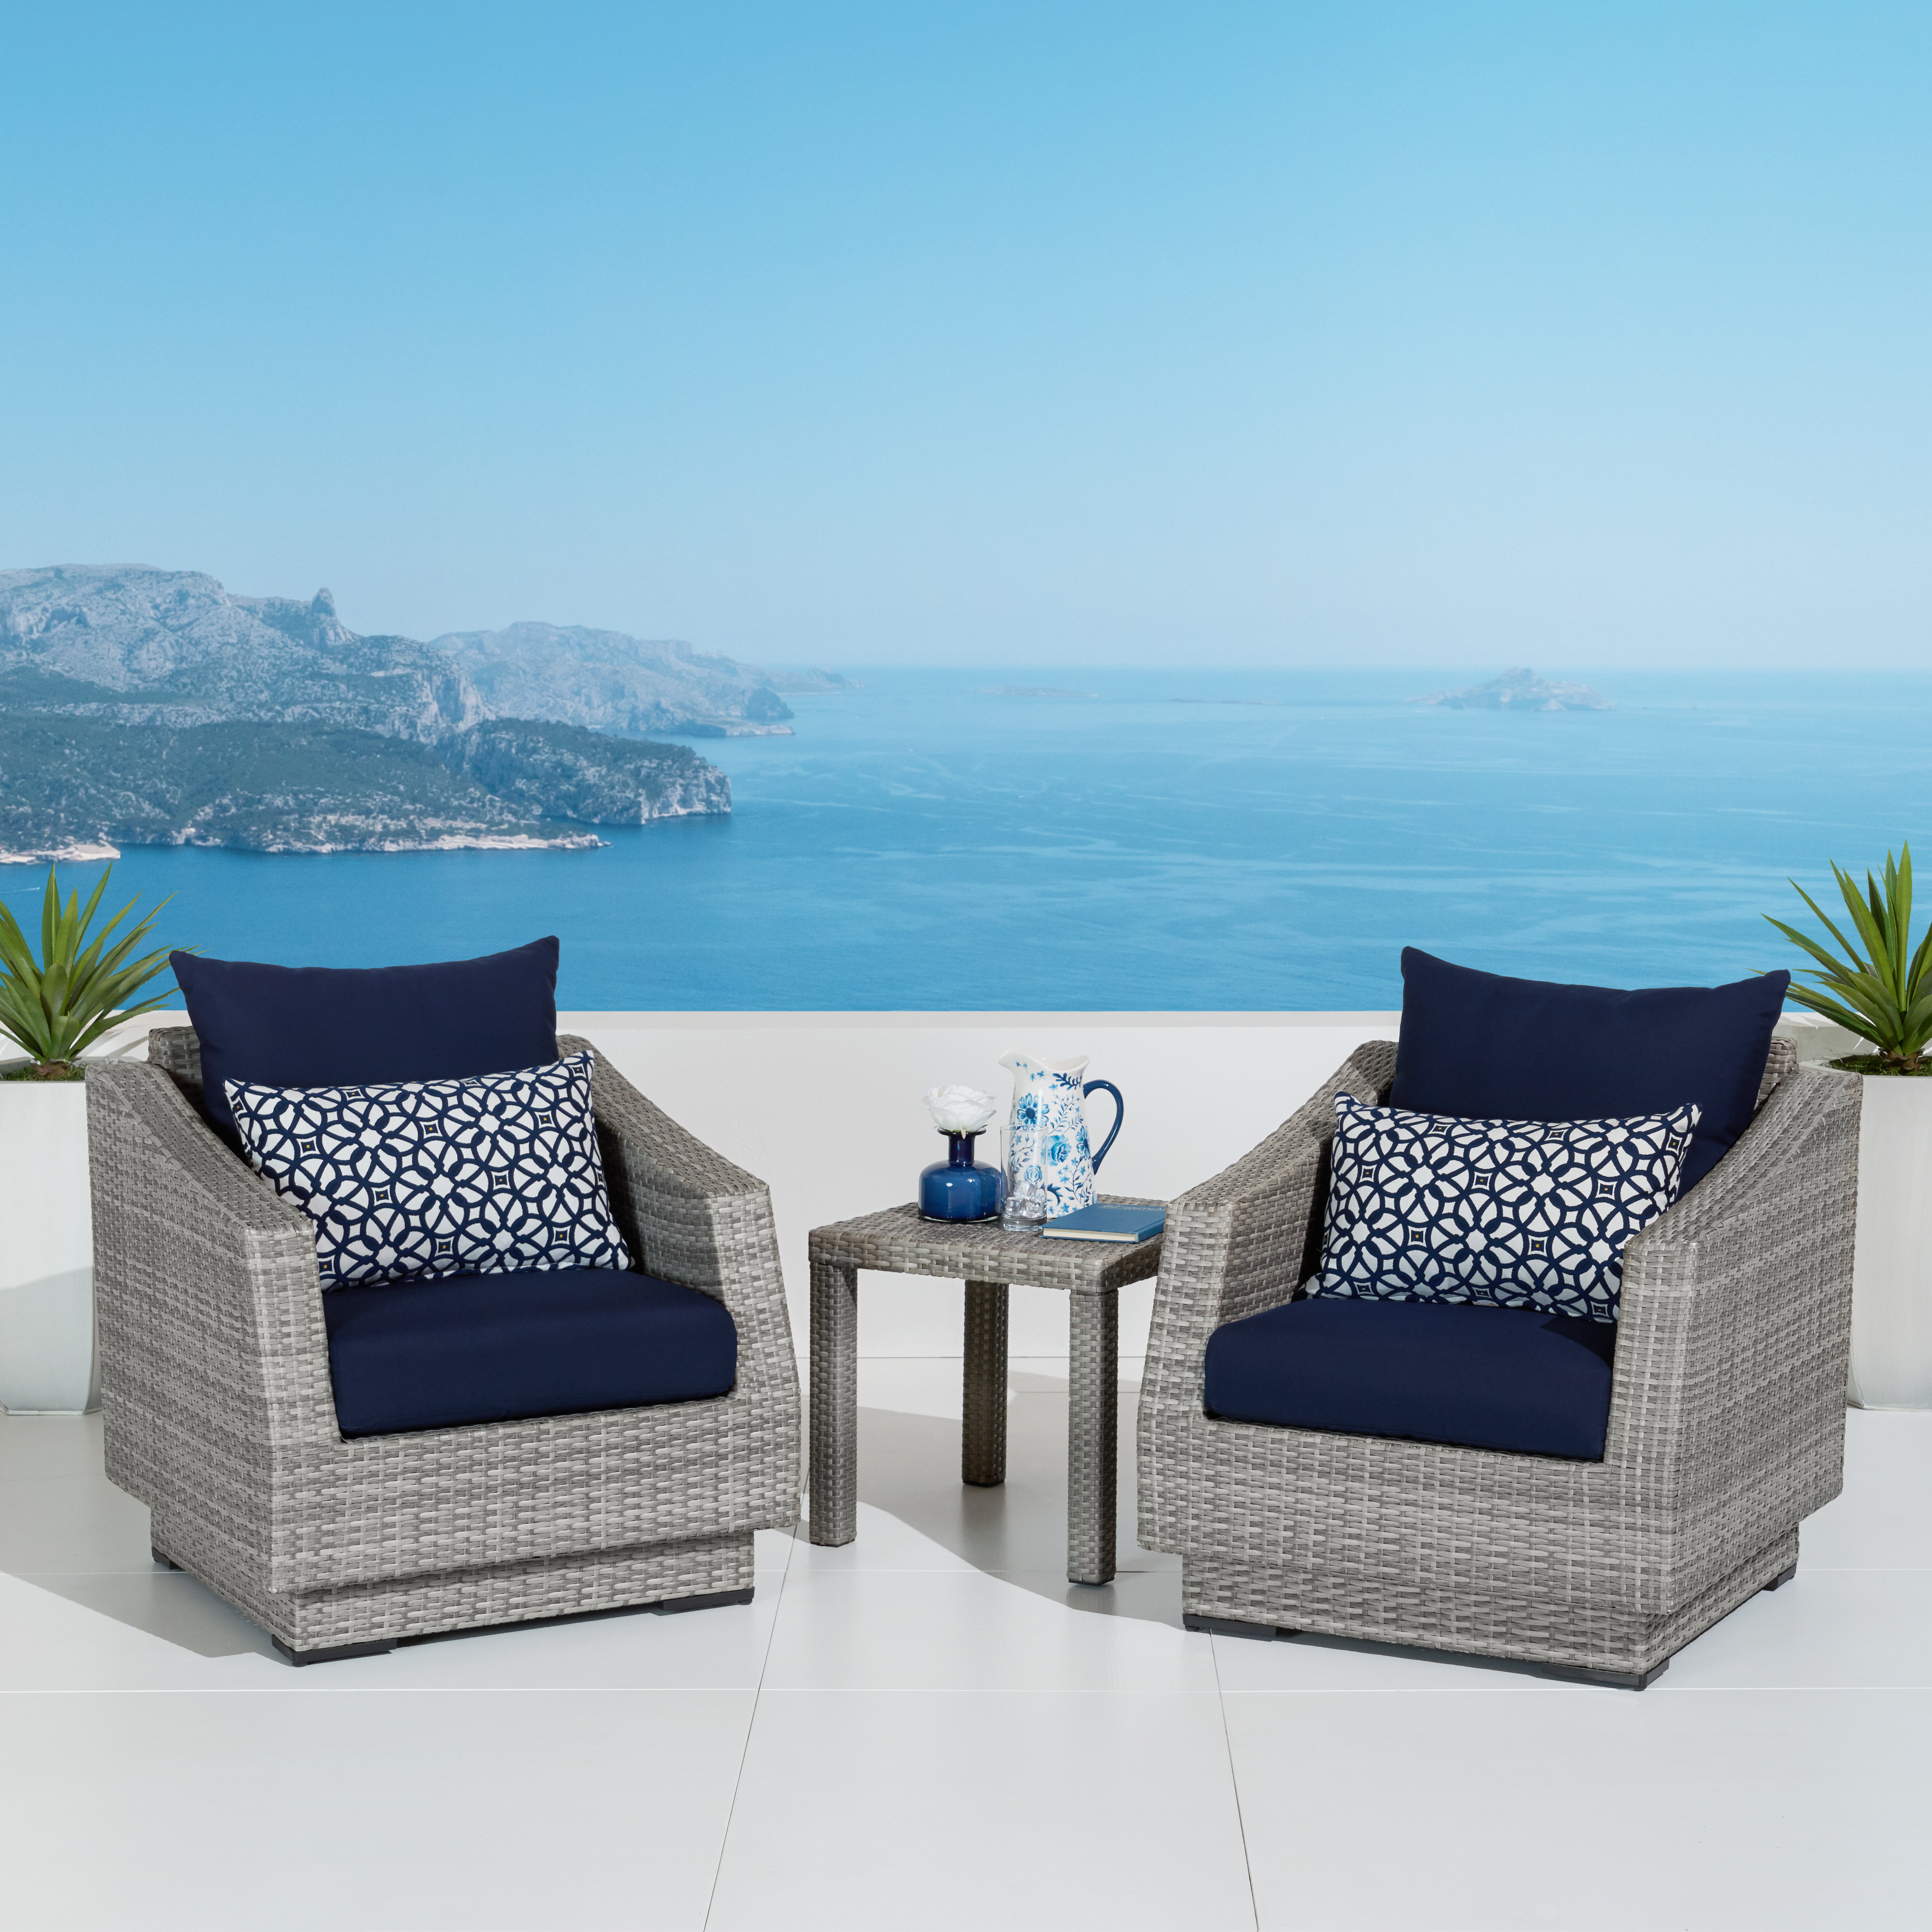 Most Popular Castelli Loveseats With Cushions In Castelli 3 Piece Conversation Set With Cushions (View 12 of 20)